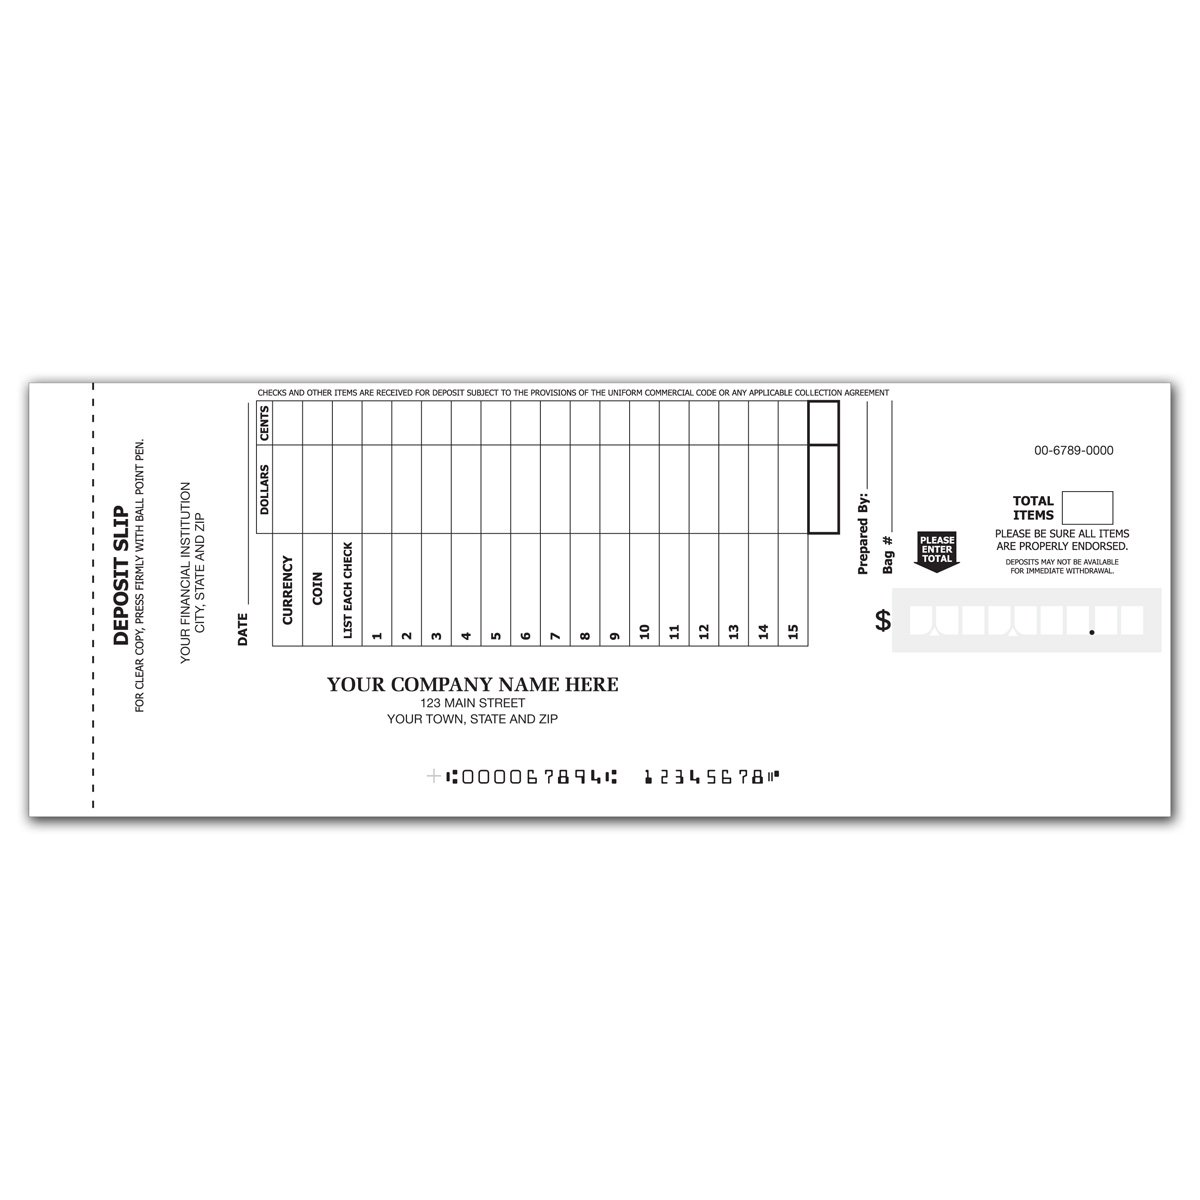 15-Line Booked Deposit Slips - Deposit Ticket Books for Business (150 qty) - Custom by CheckSimple (Image #1)